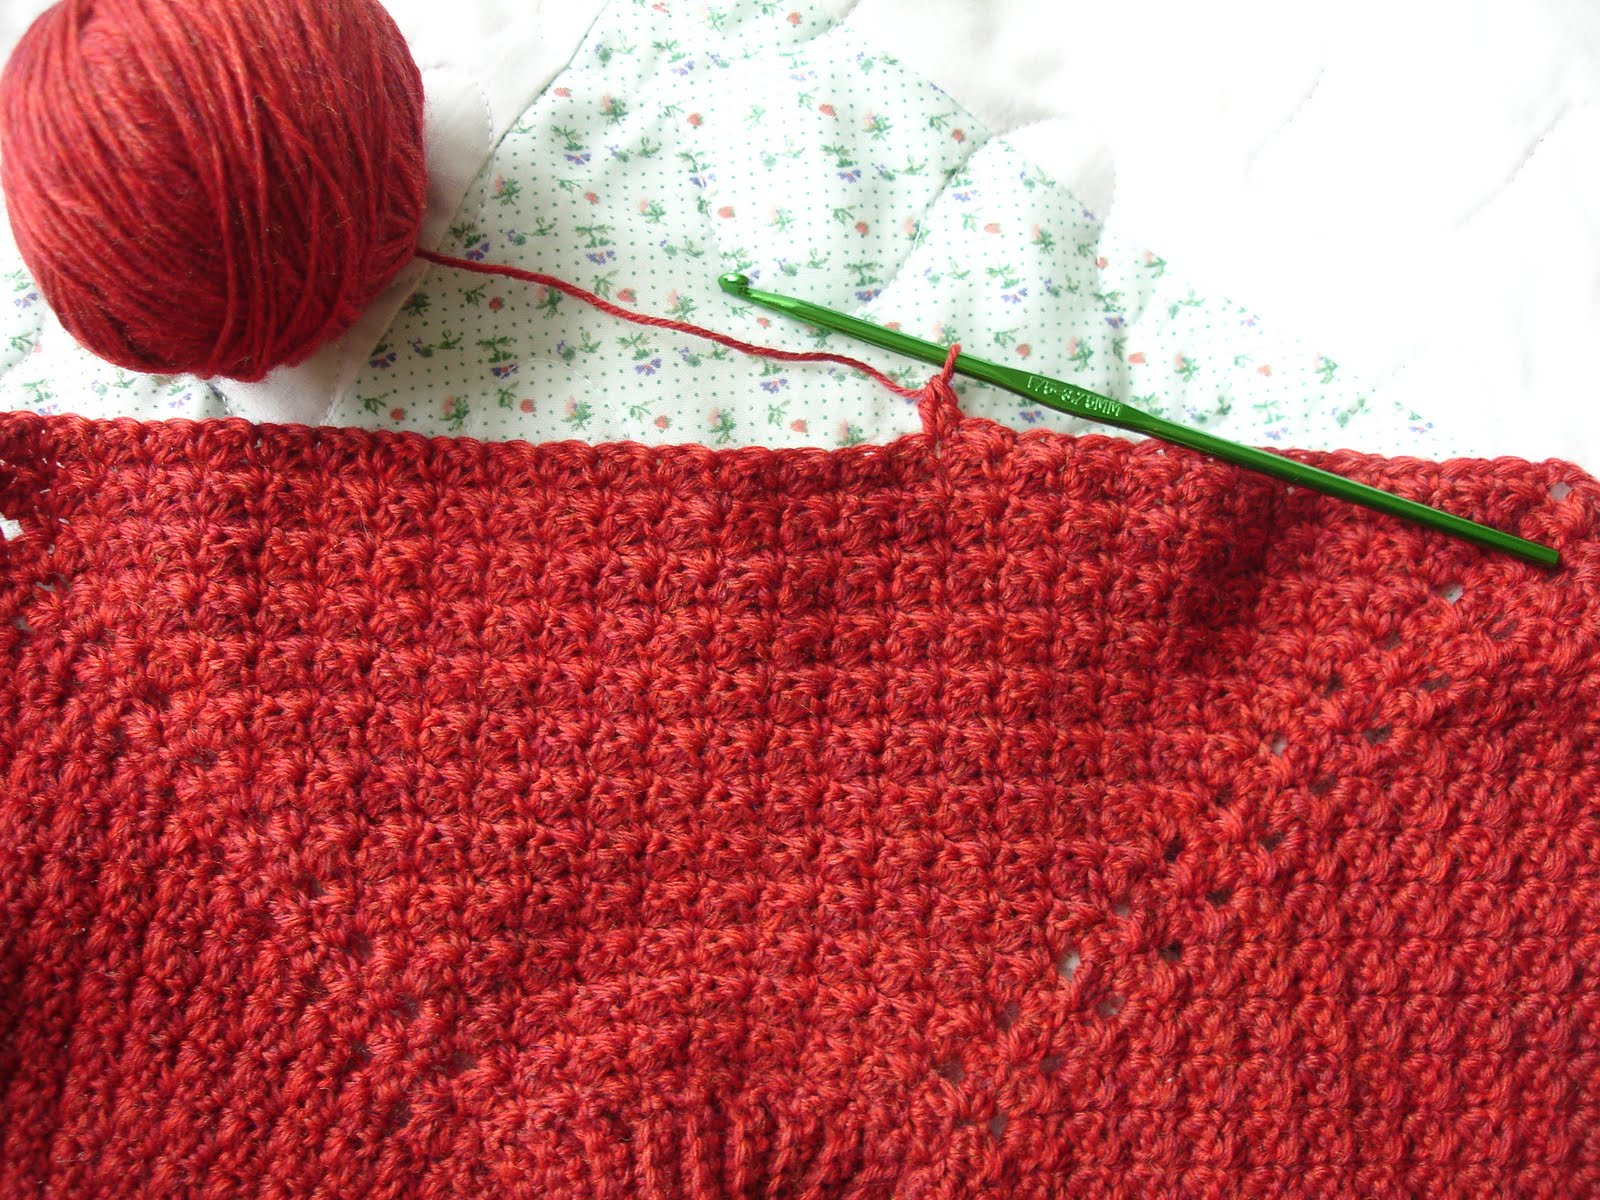 Hands Crocheting Muscle memory makes crocheting